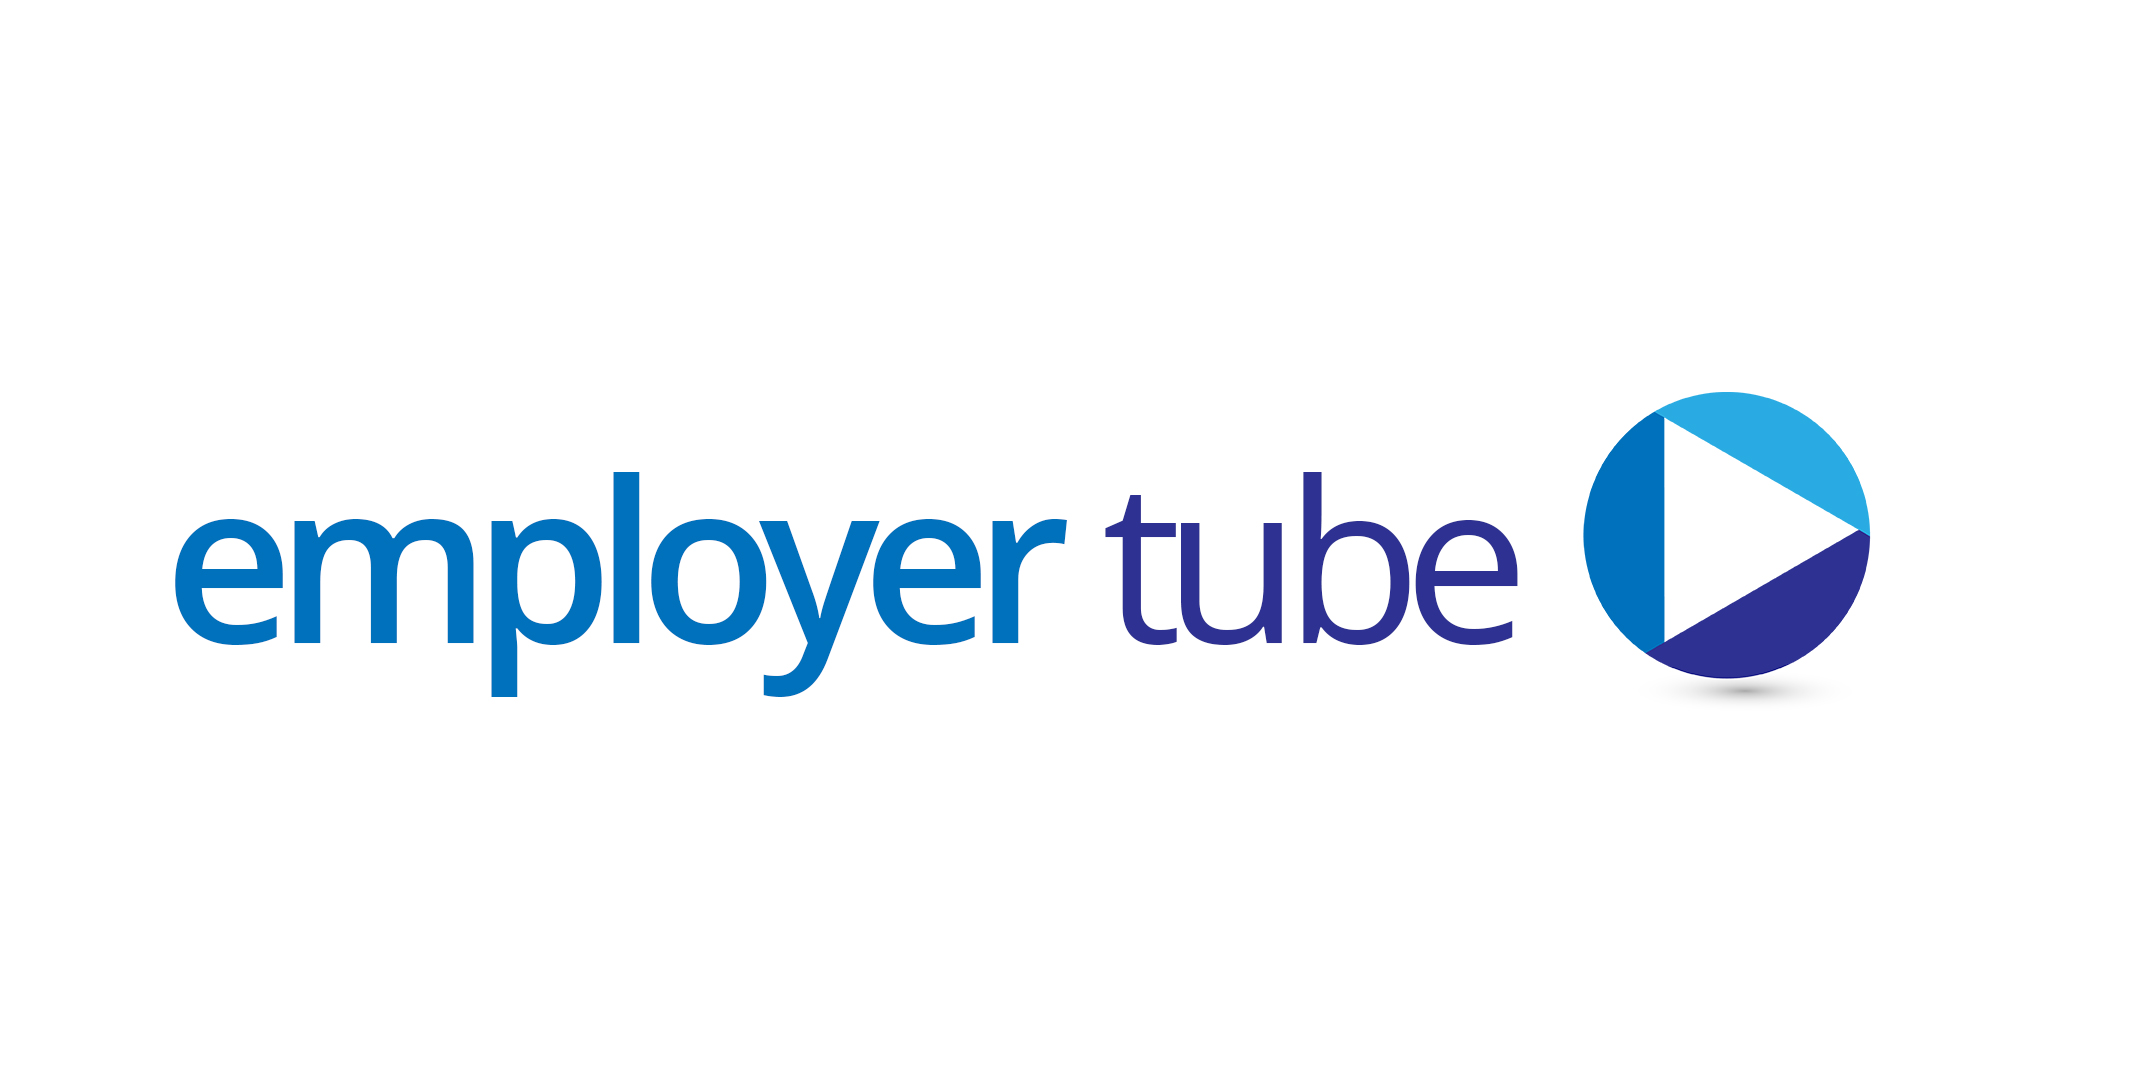 Read EmployerTube Reviews